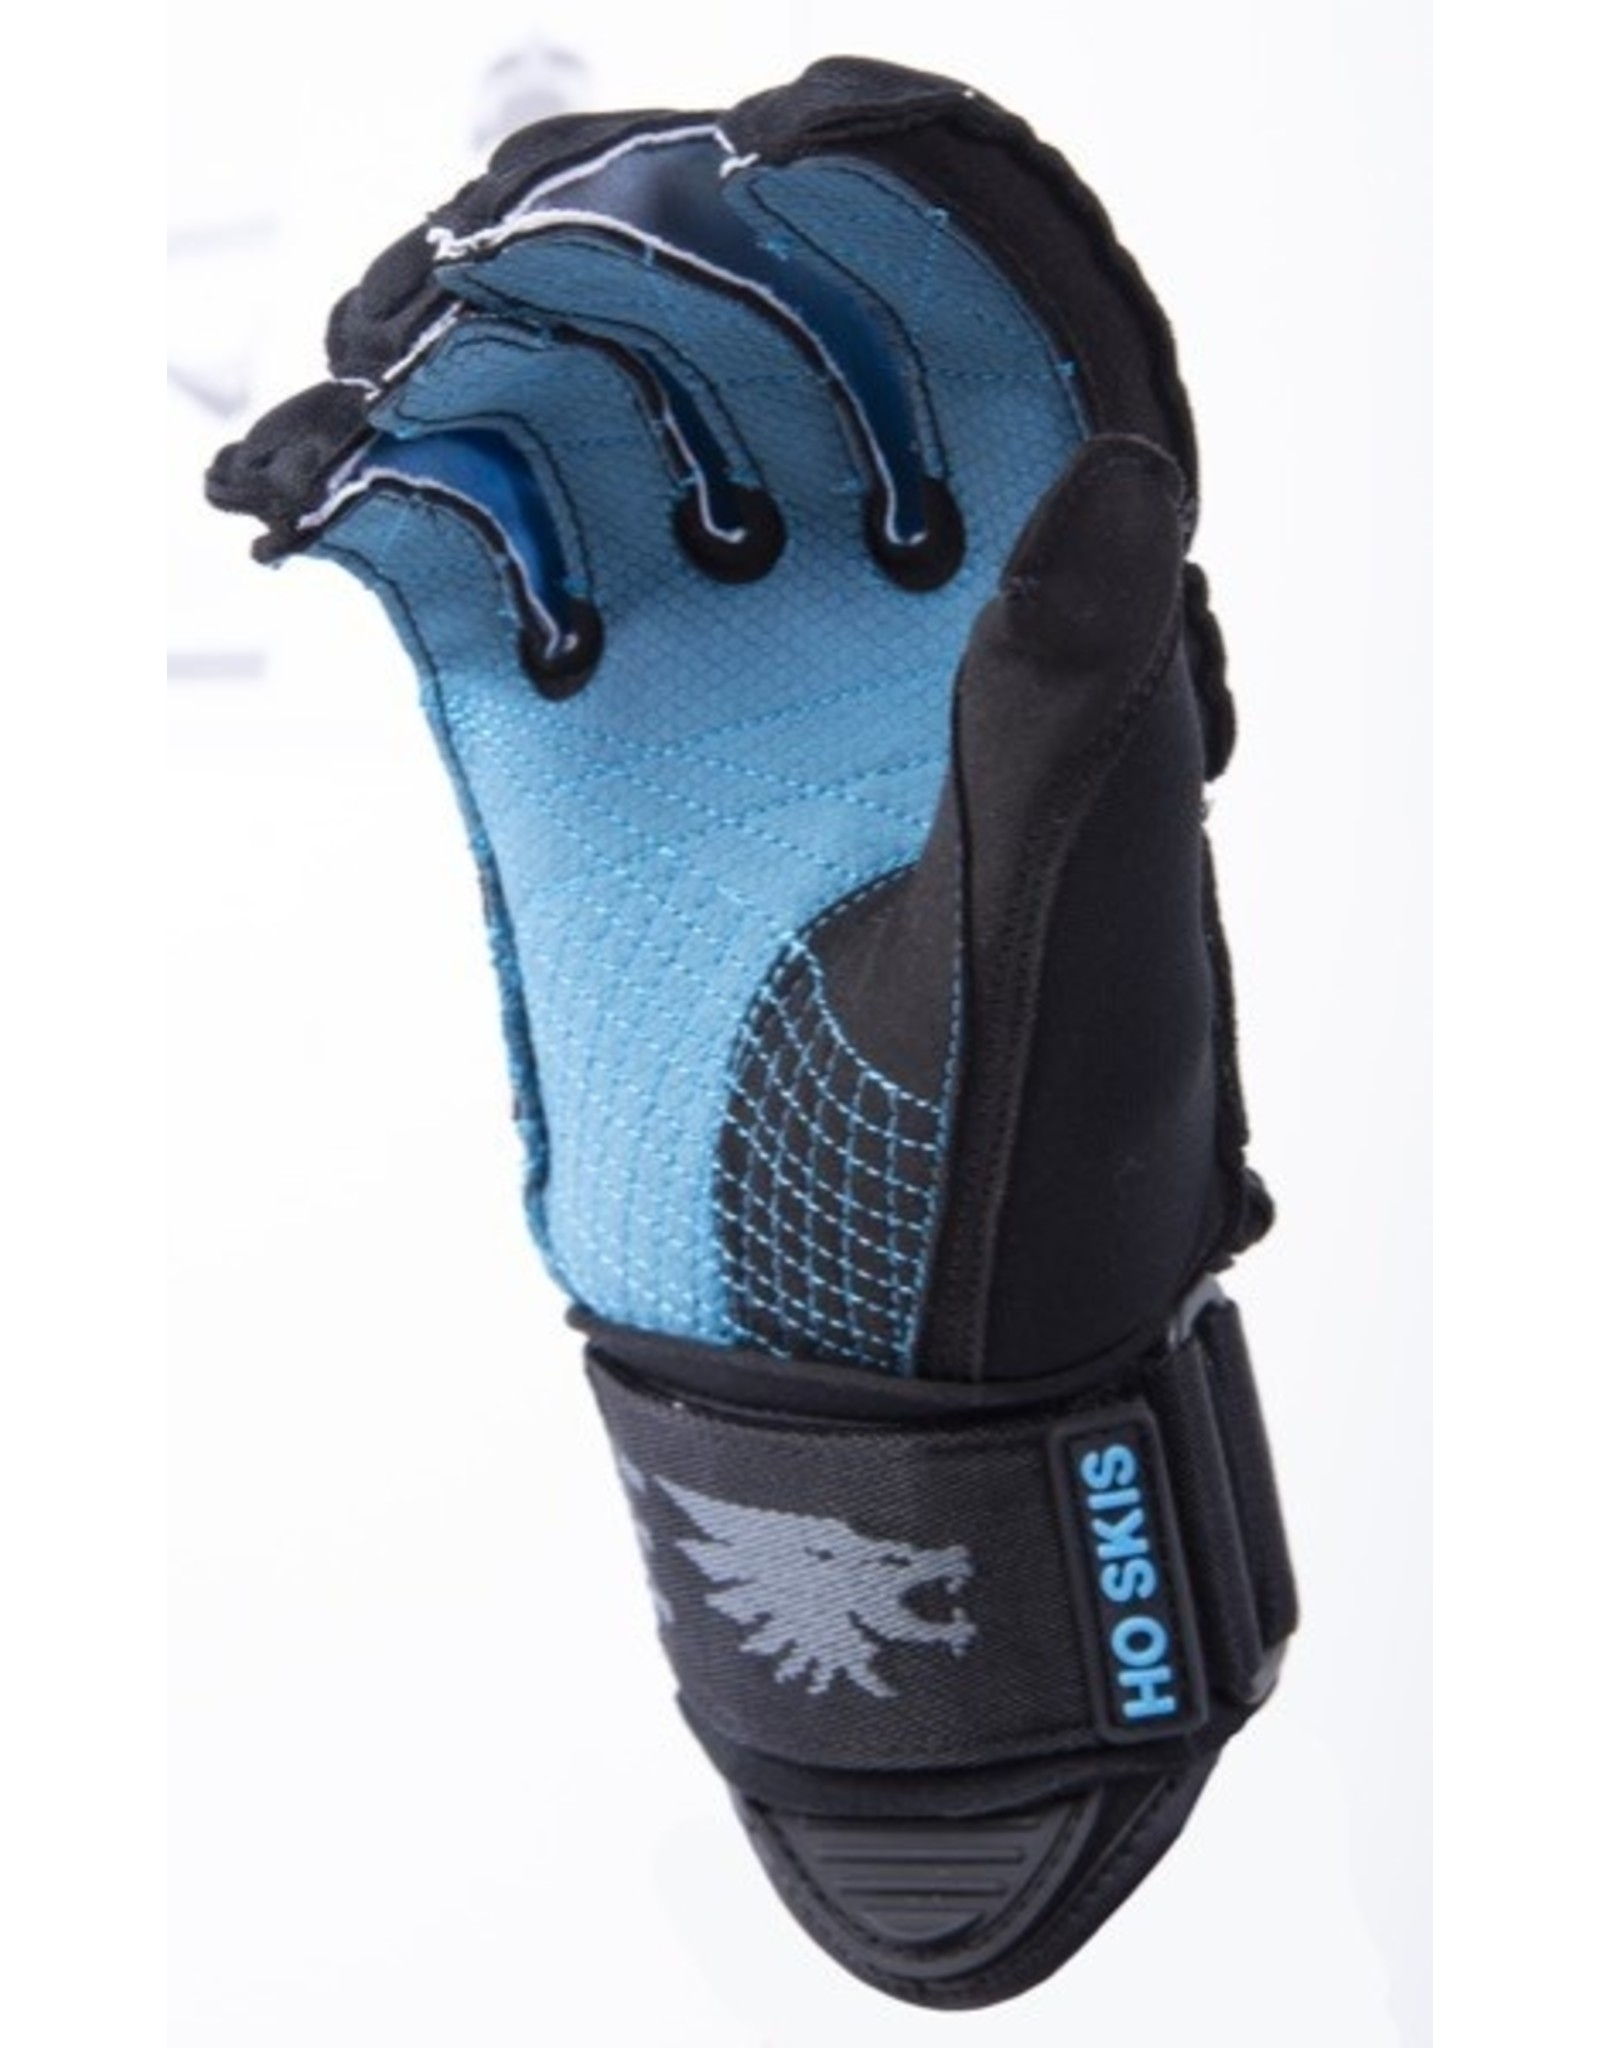 HO Syndicate Legend Inside Out Glove 2019